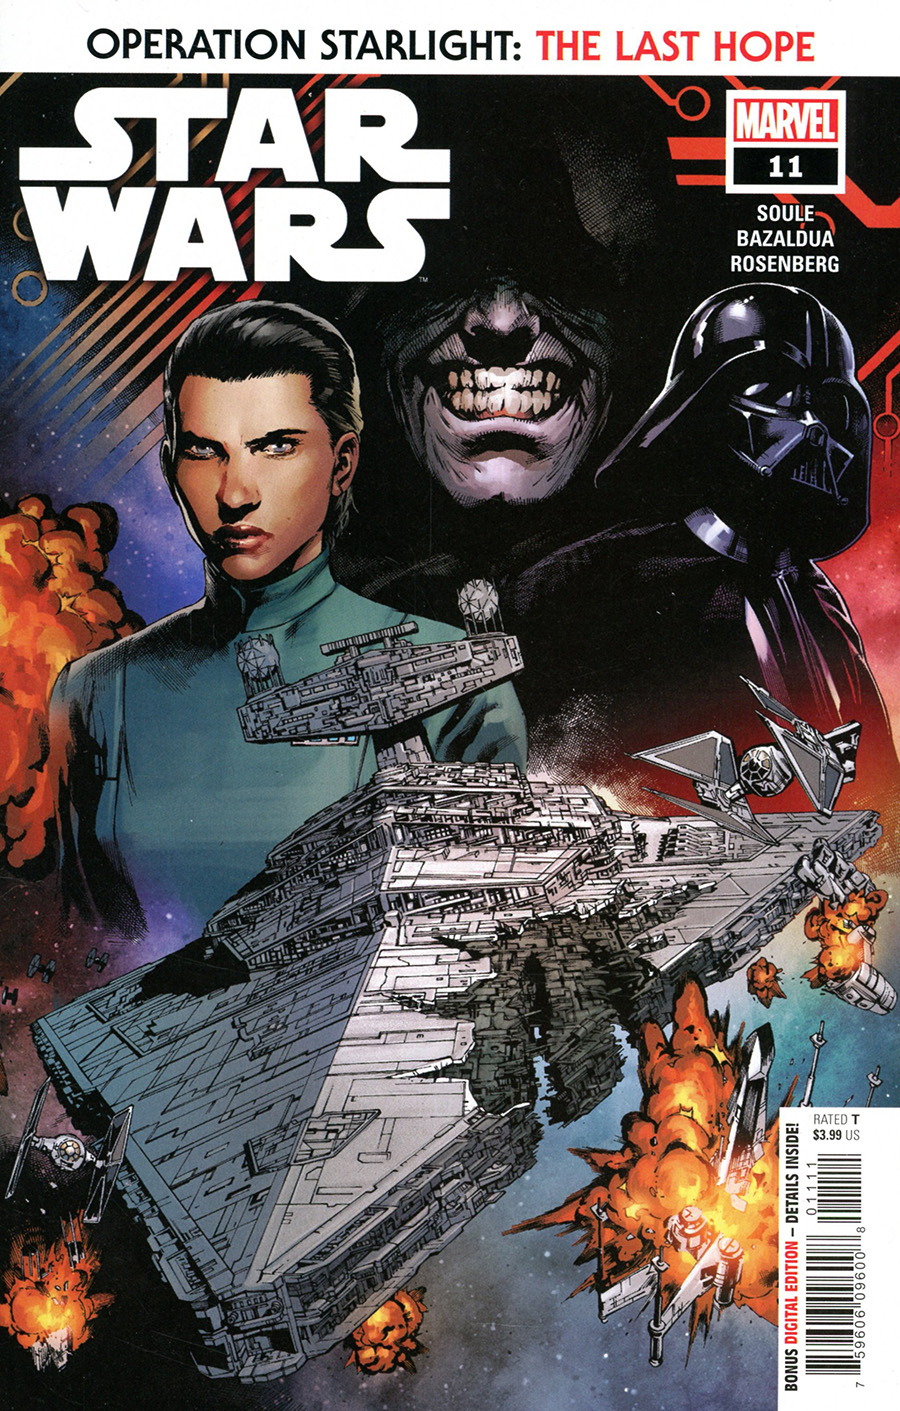 Star Wars Vol 5 #11 Cover A Regular Carlo Pagulayan Cover